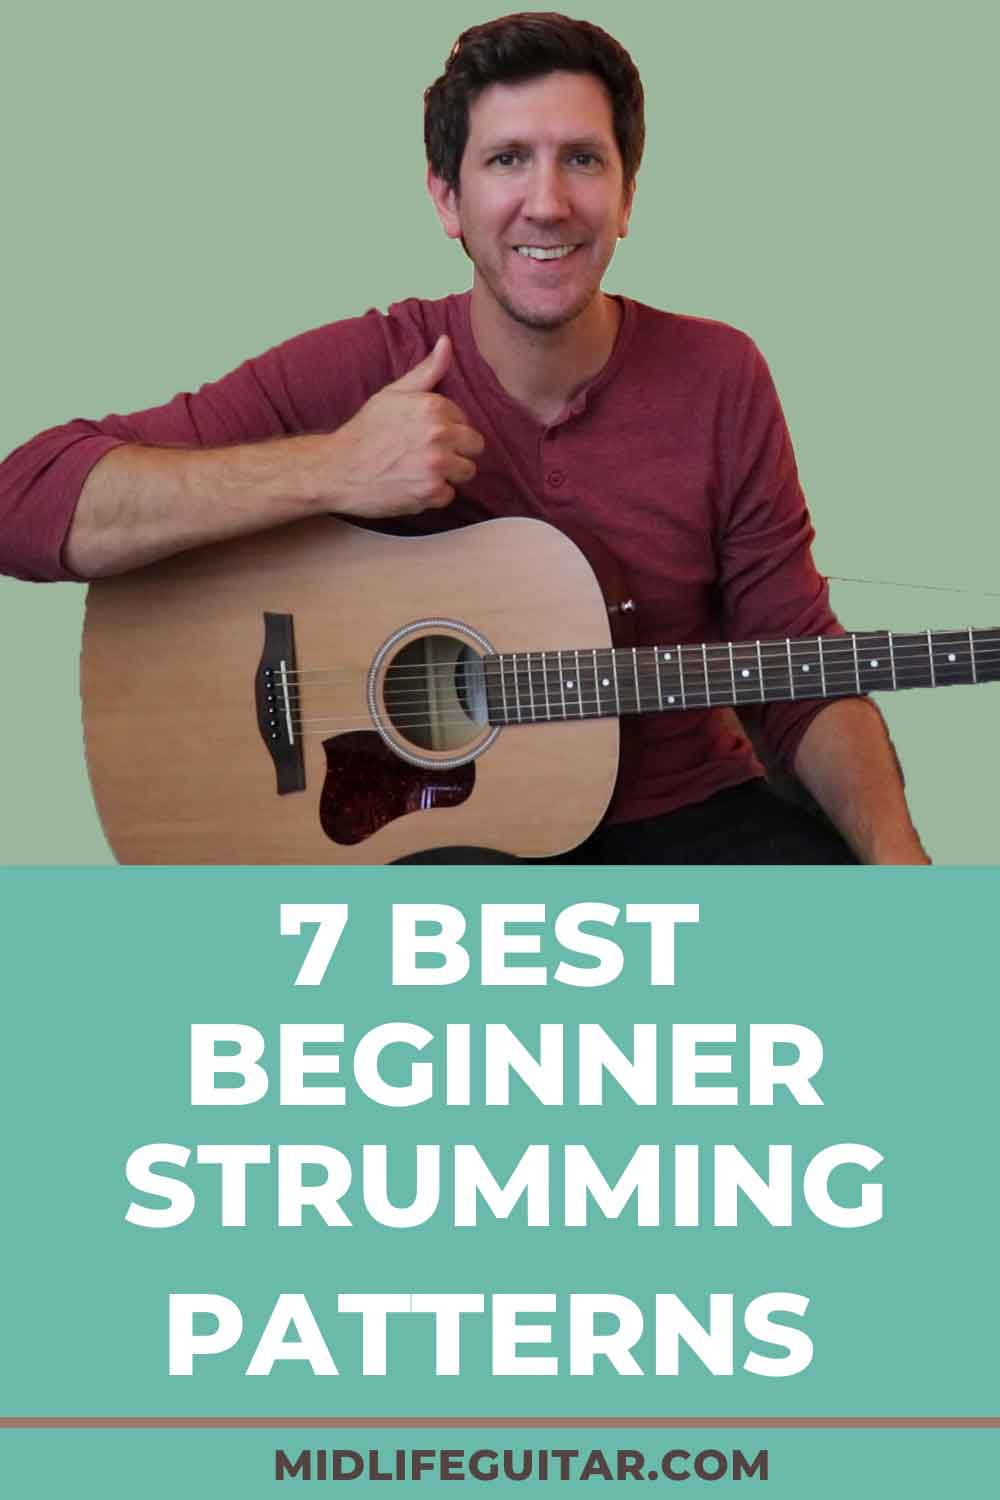 Best Beginner Strumming Patterns